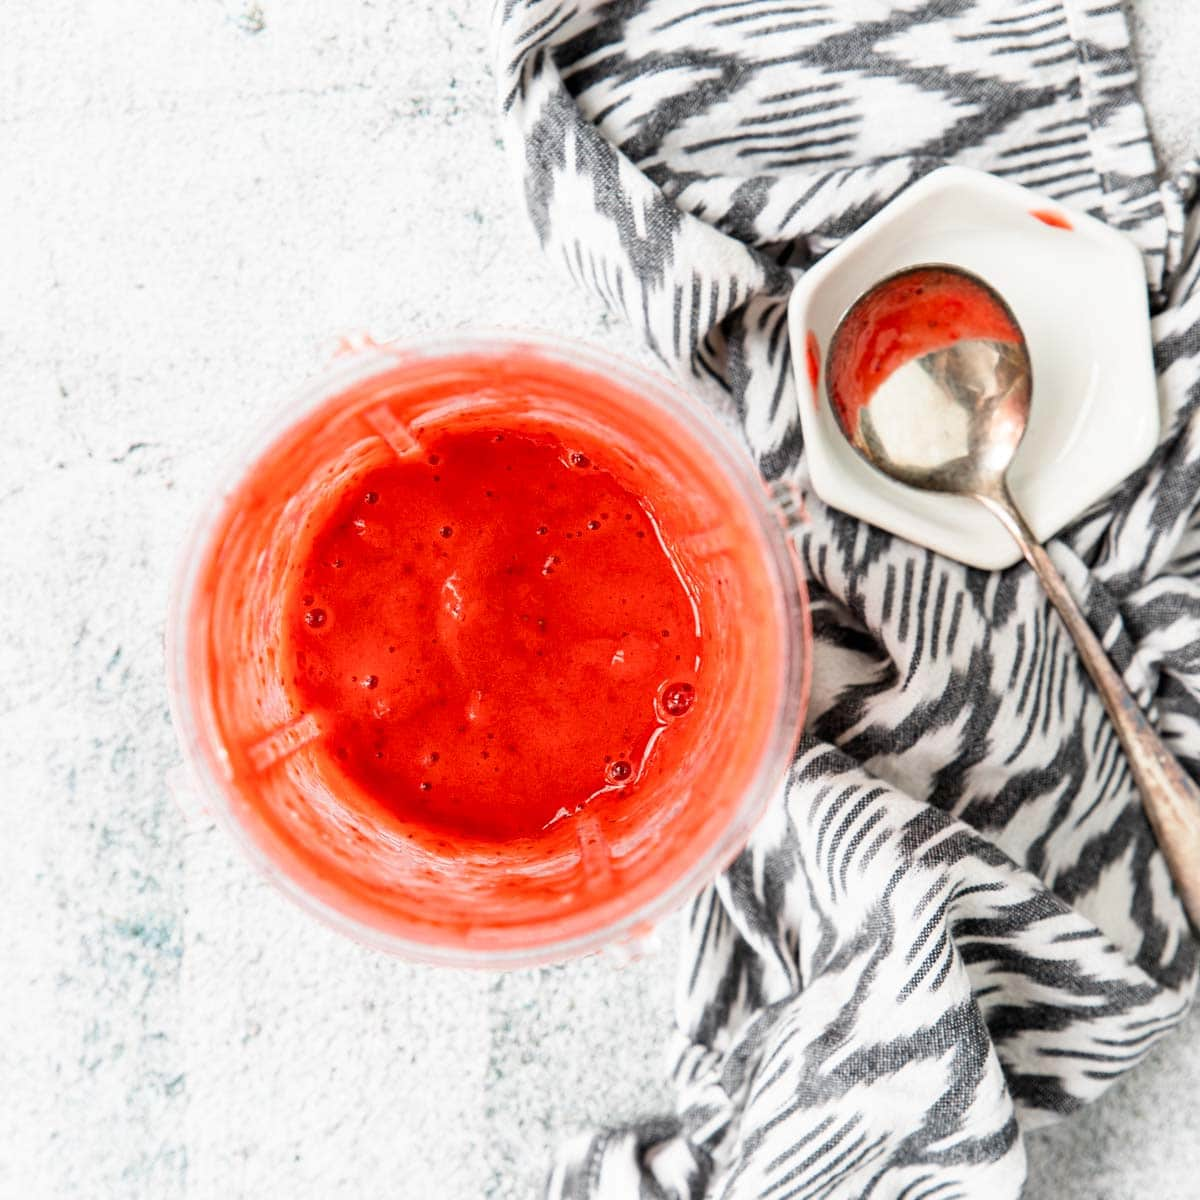 strawberry puree in a blender cup